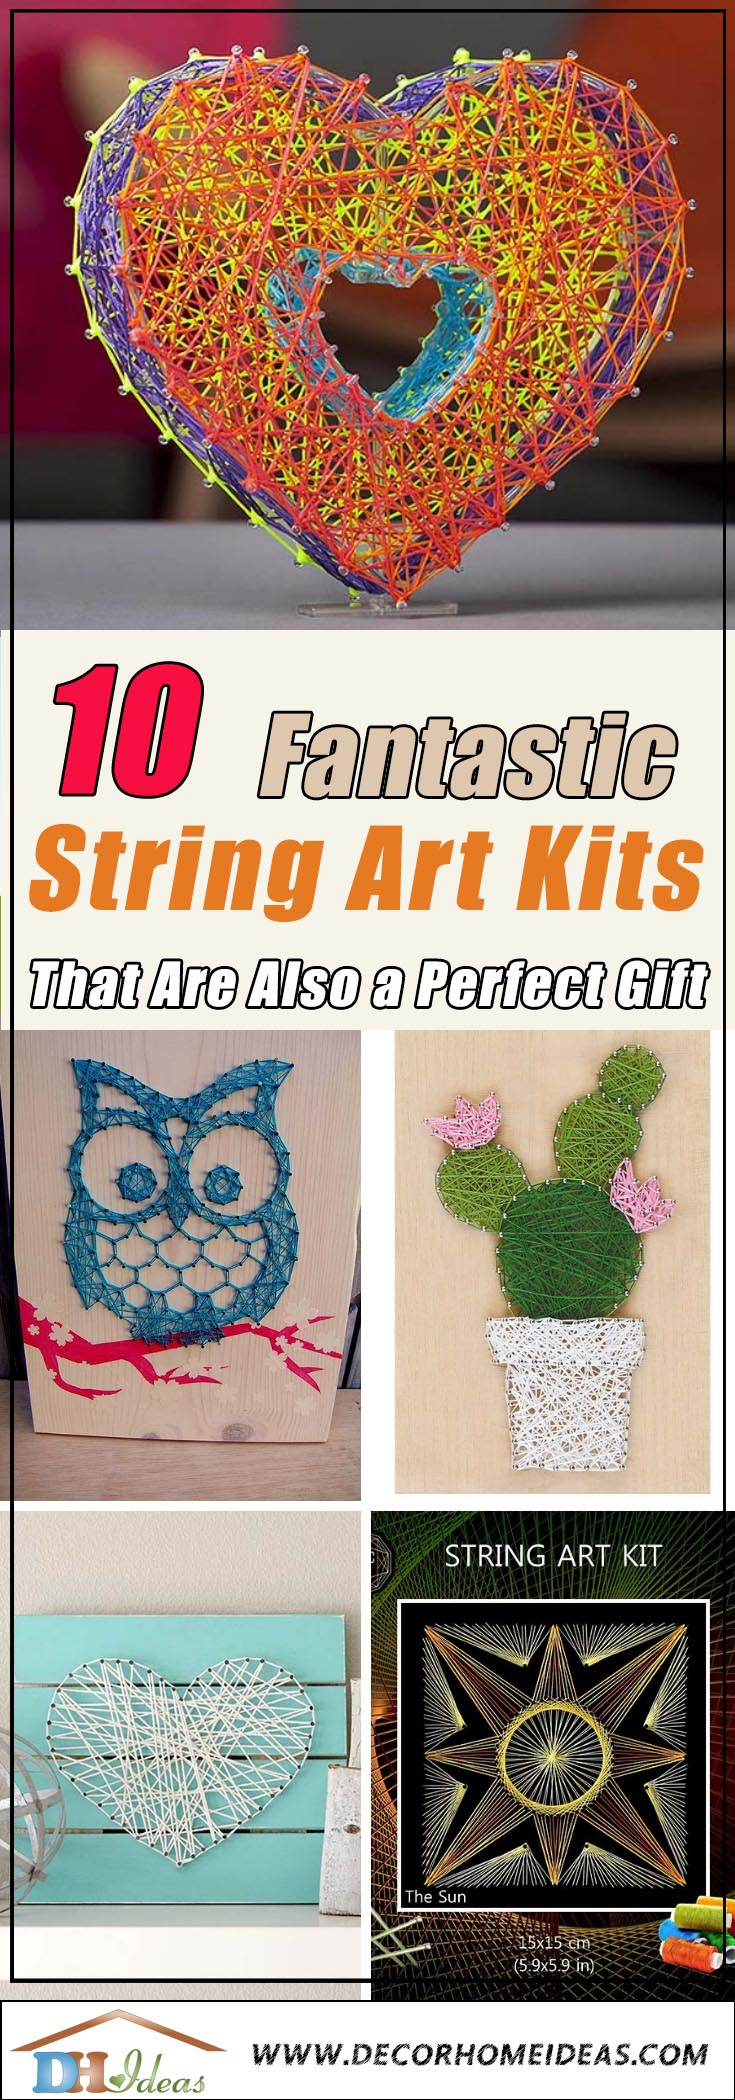 Best String Art Kits that you can use to create beautiful string art desings. Suitable for adults and kids. #stringart #kit #crafts #decor #decorhomeideas